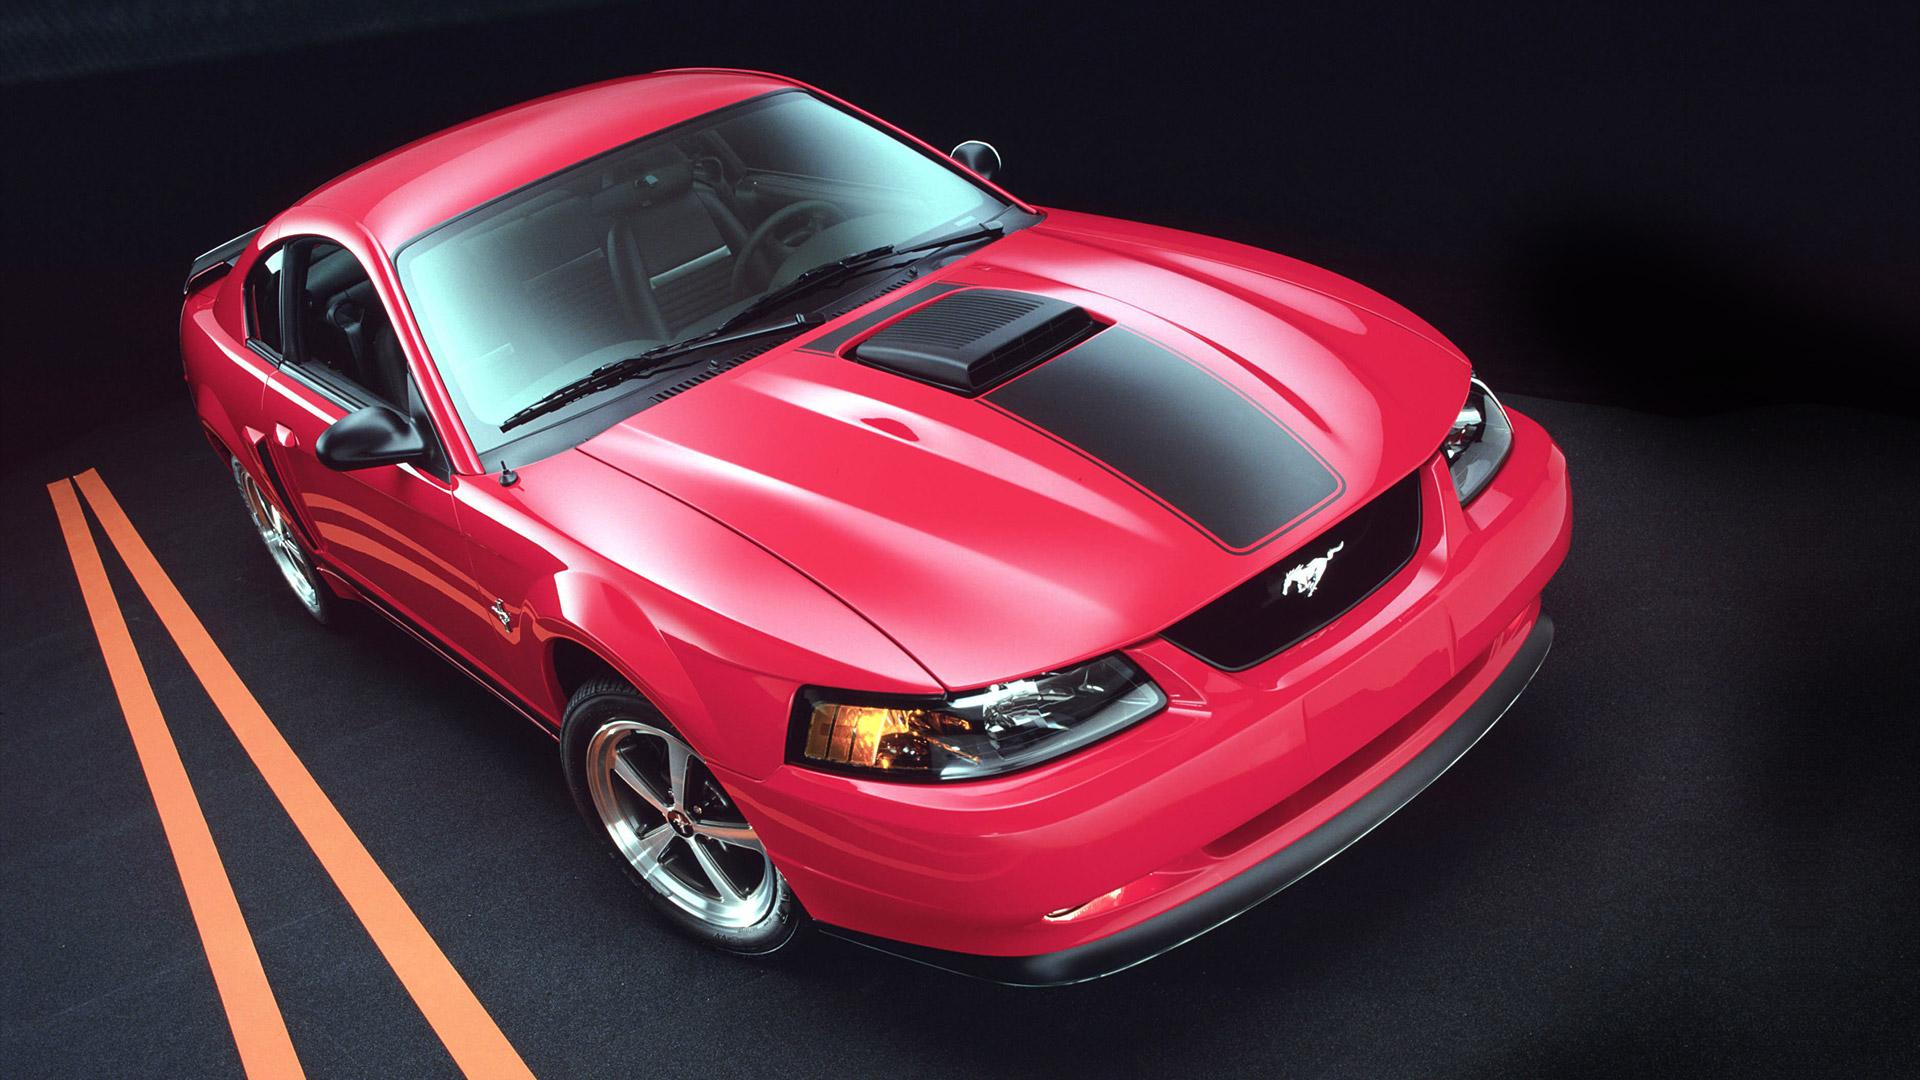 Ford Mustang Mach 1 Wallpapers Wallpaper Cave